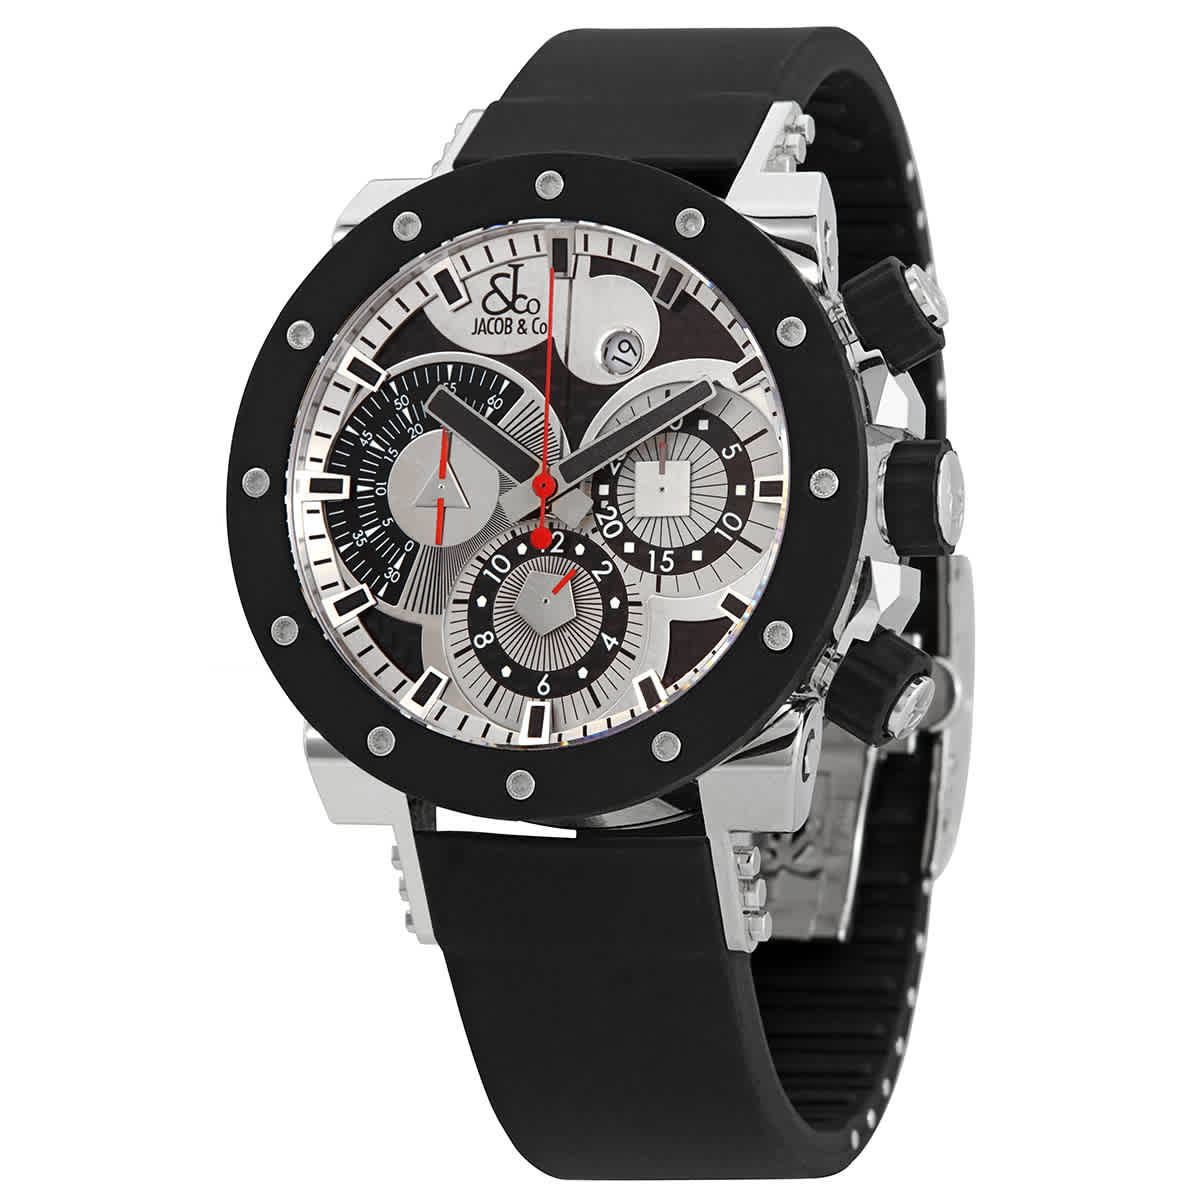 Jacob & Co. Epic Ii Limited Edition Automatic Chronograph Watch E1r In Black